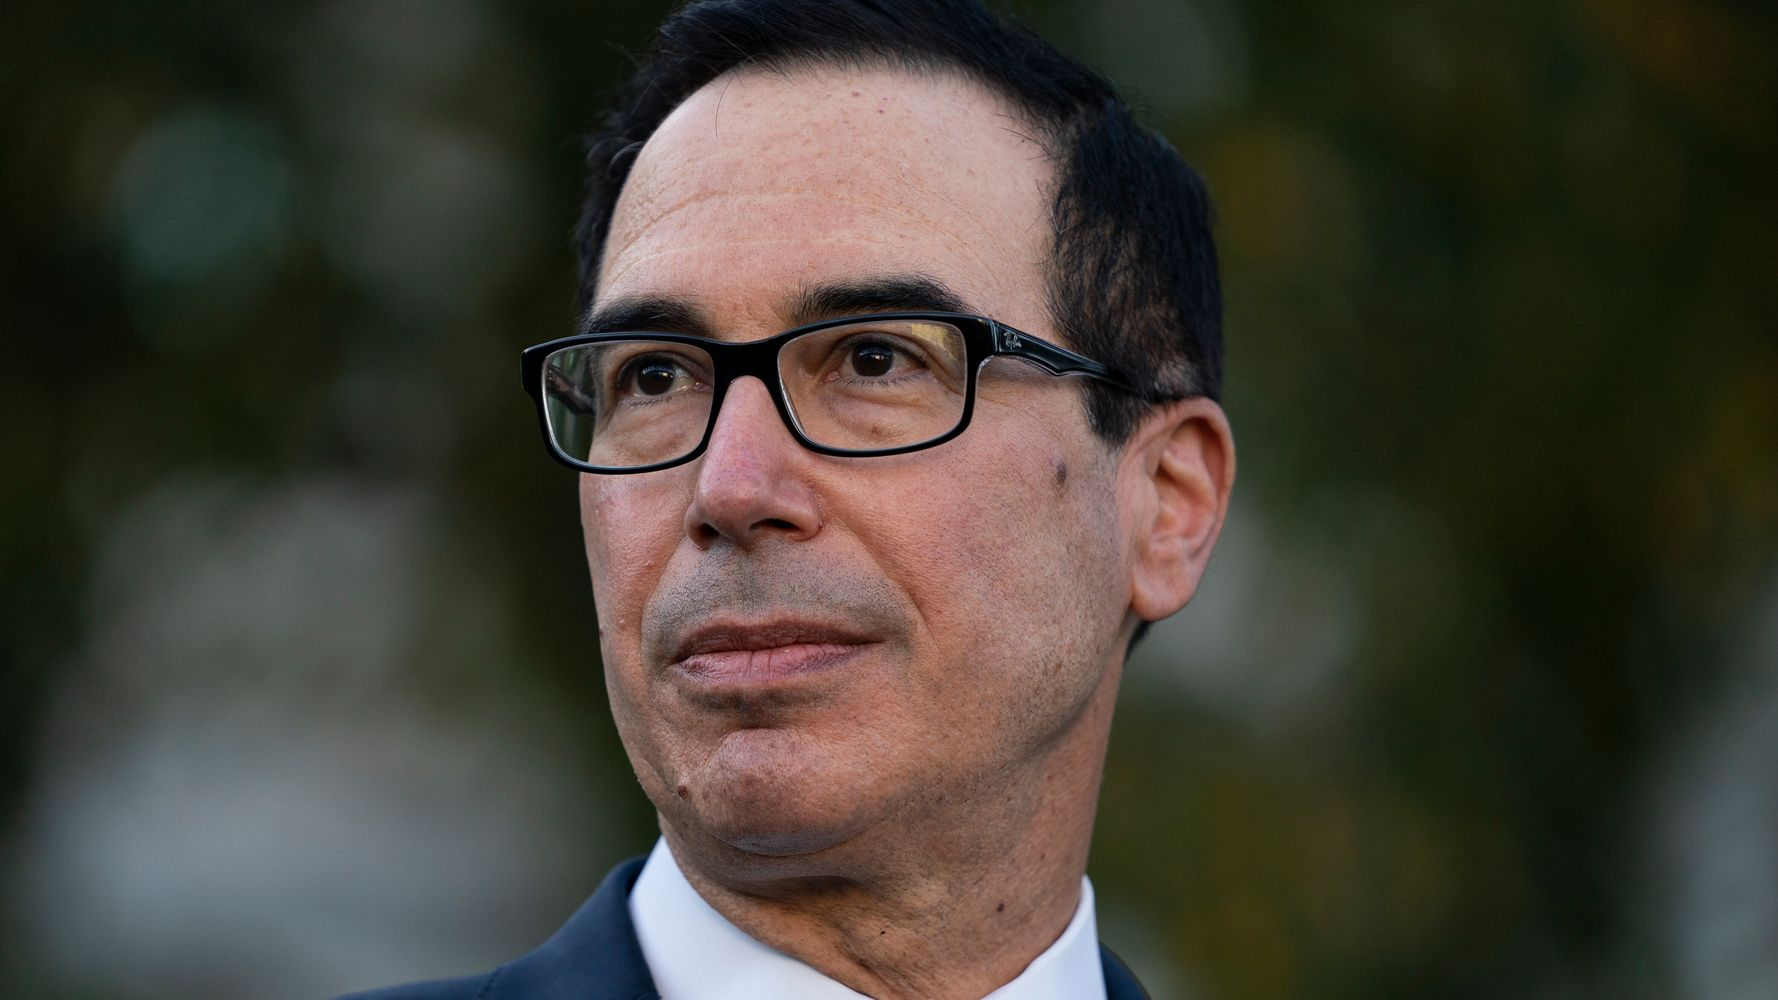 Mnuchin Defends Shutting Down Fed Emergency Loan Programs